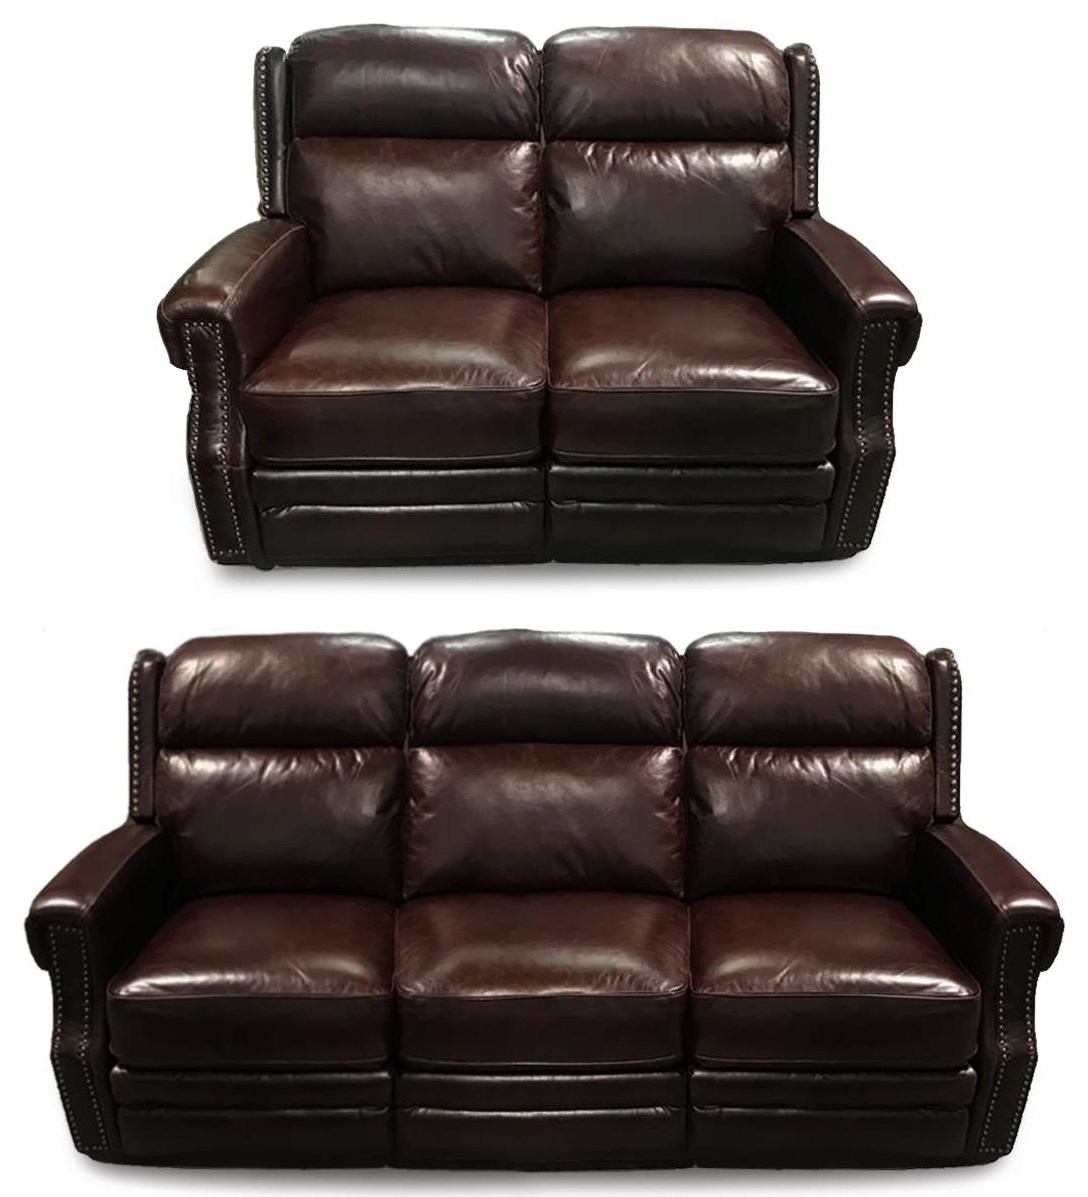 Nathan 2PC Power Recline Sofa & Loveseat Set by Design to Recline at Rotmans